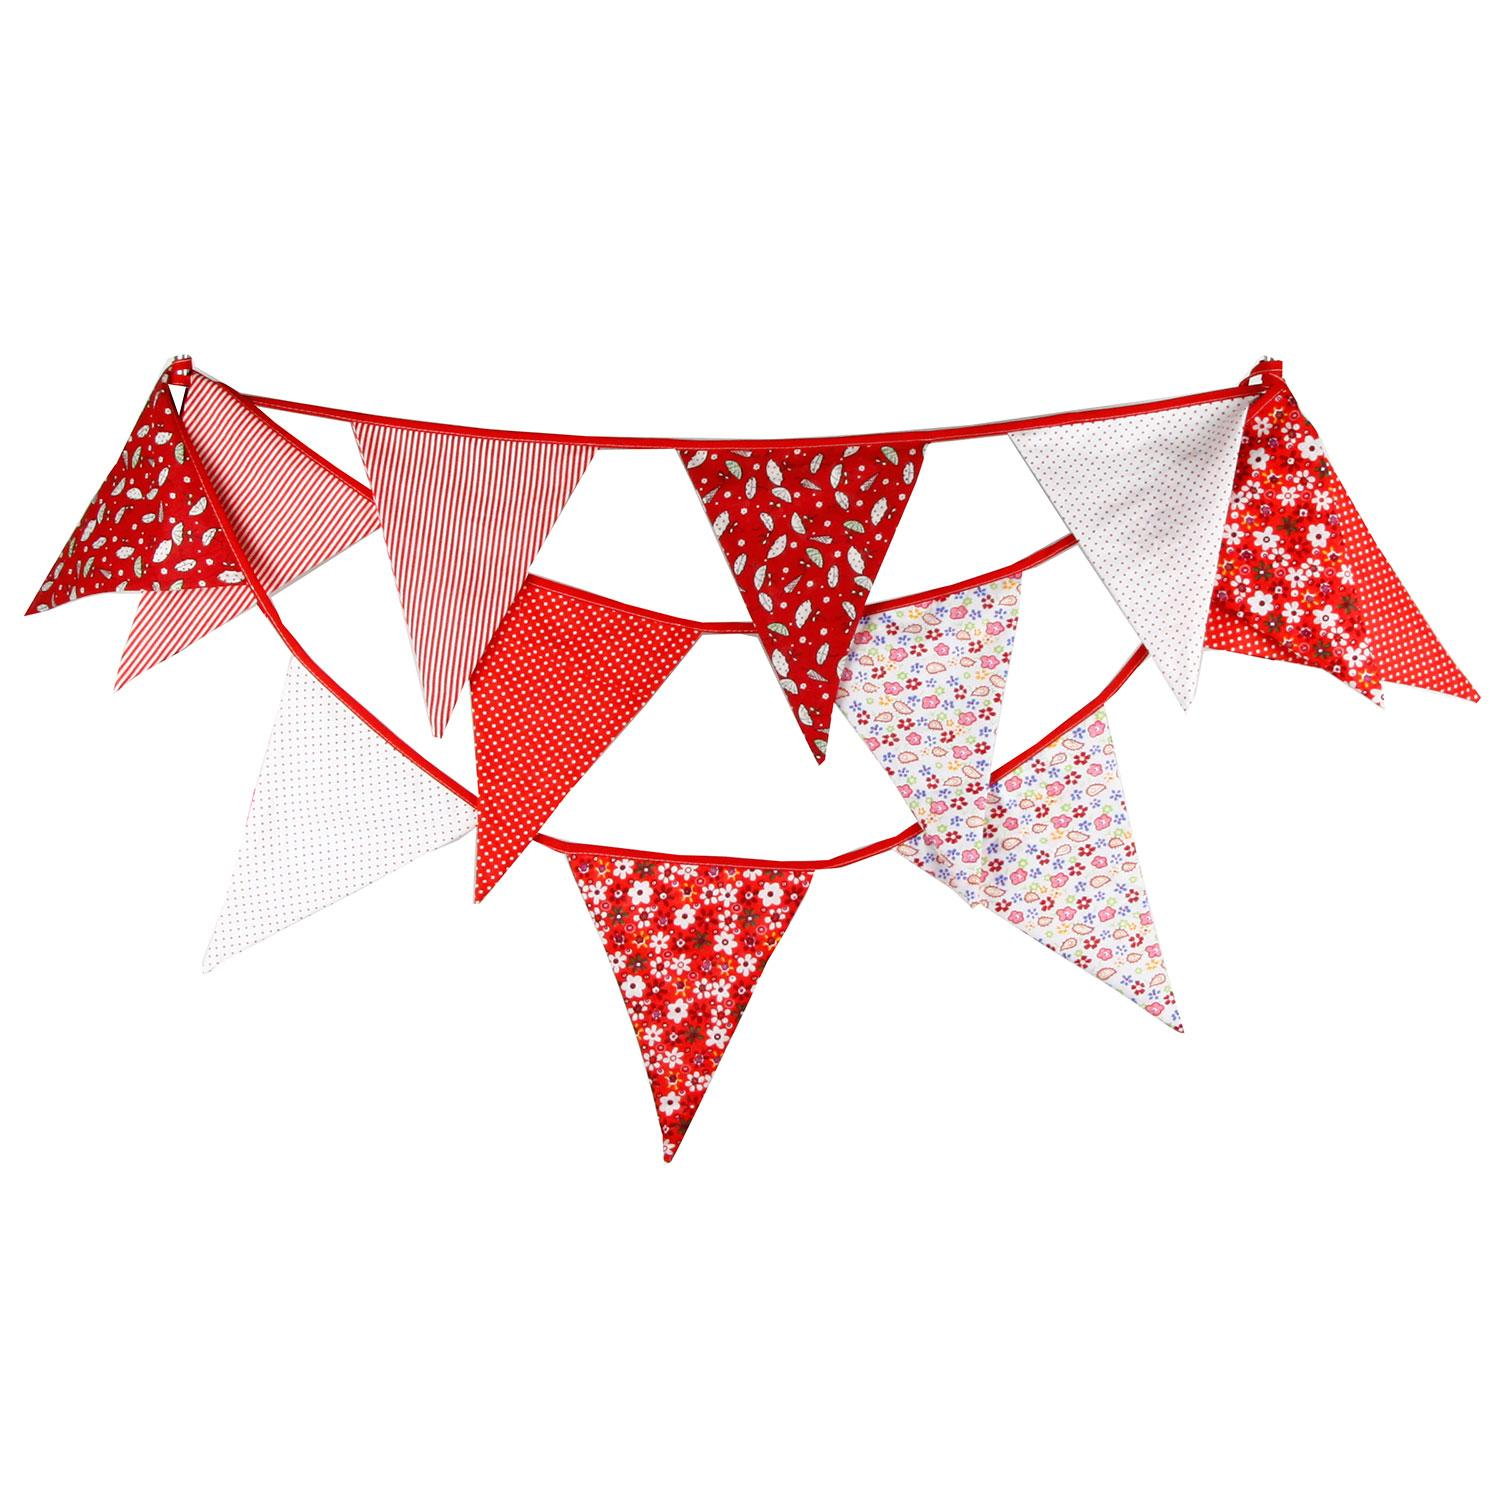 3.7M of 12 Flags Cotton Fabric Banners Personality Wedding Red ...